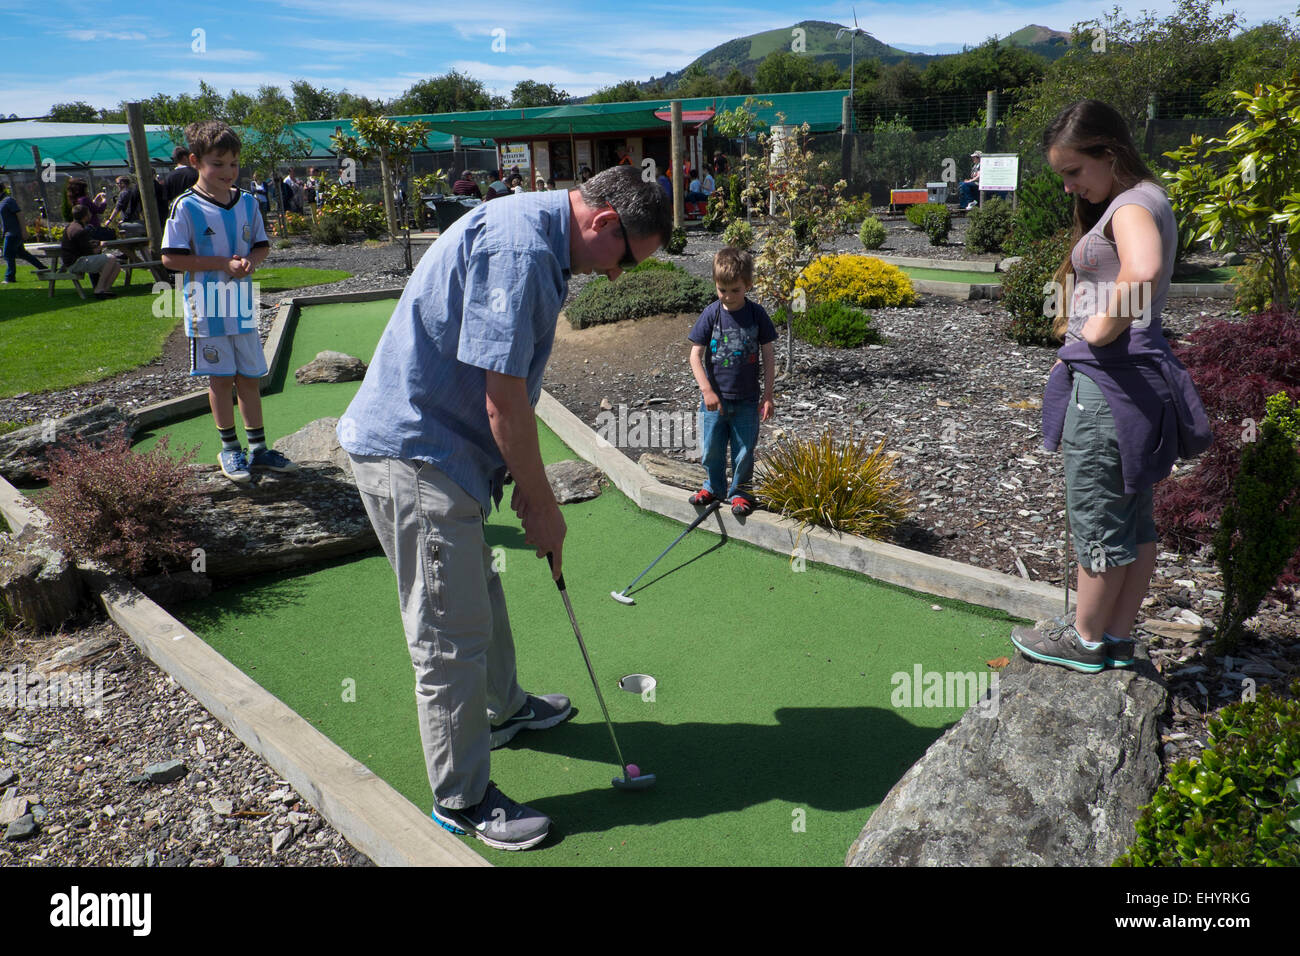 Family playing crazy golf, near Dunedin, New Zealand - Stock Image